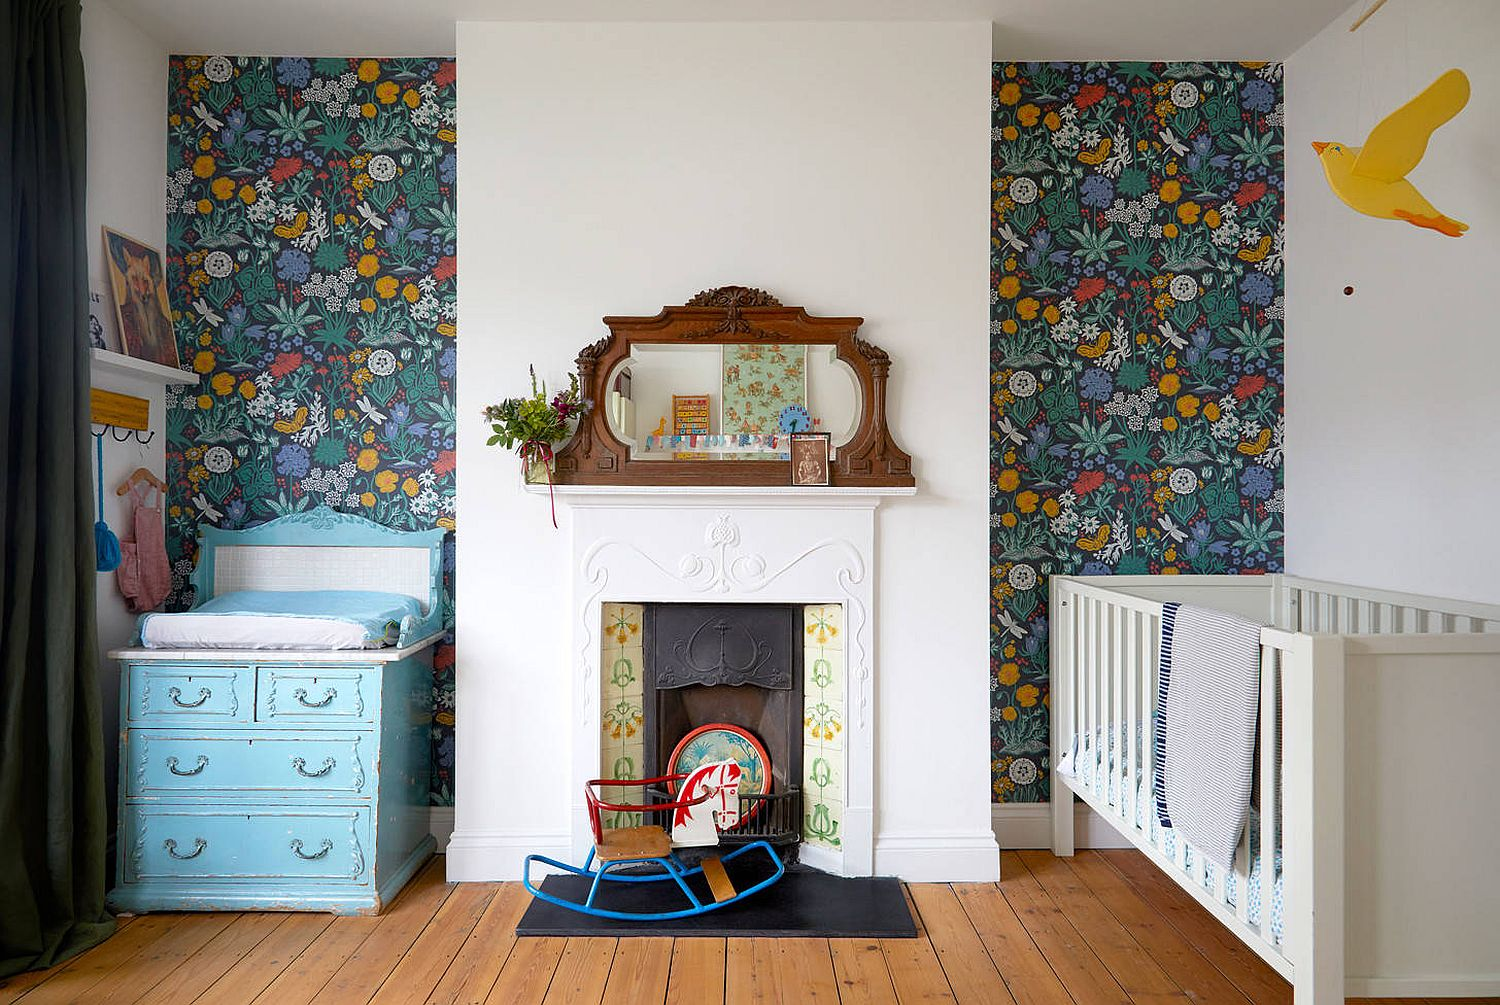 Colorful and unique wallpapered backdrop for the small nursery with an eclectic appeal